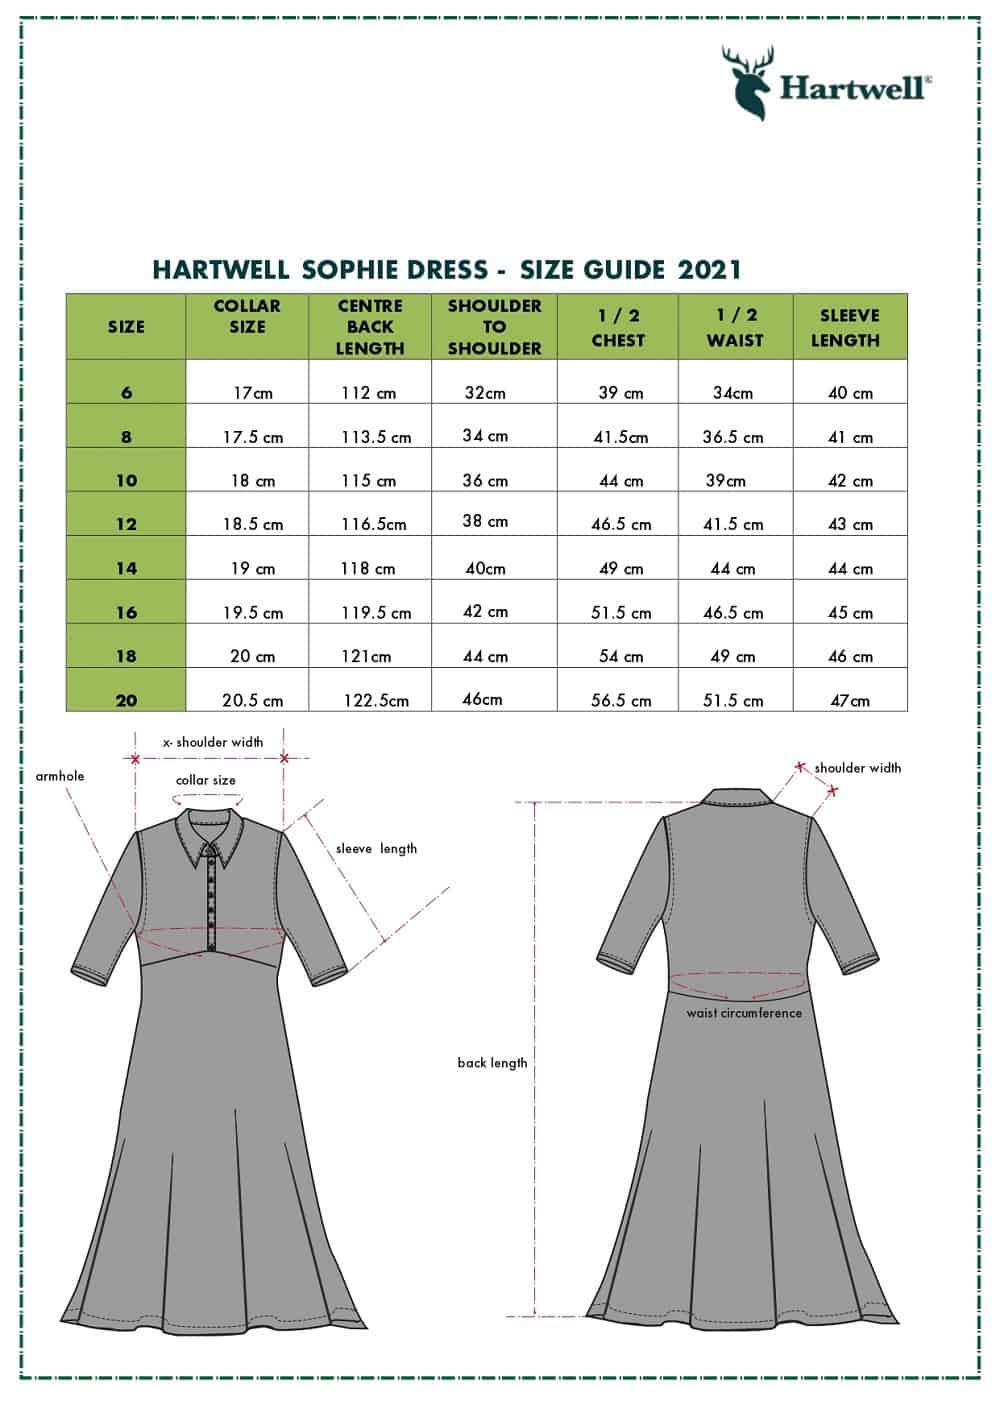 SOPHIE SIZE GUIDE